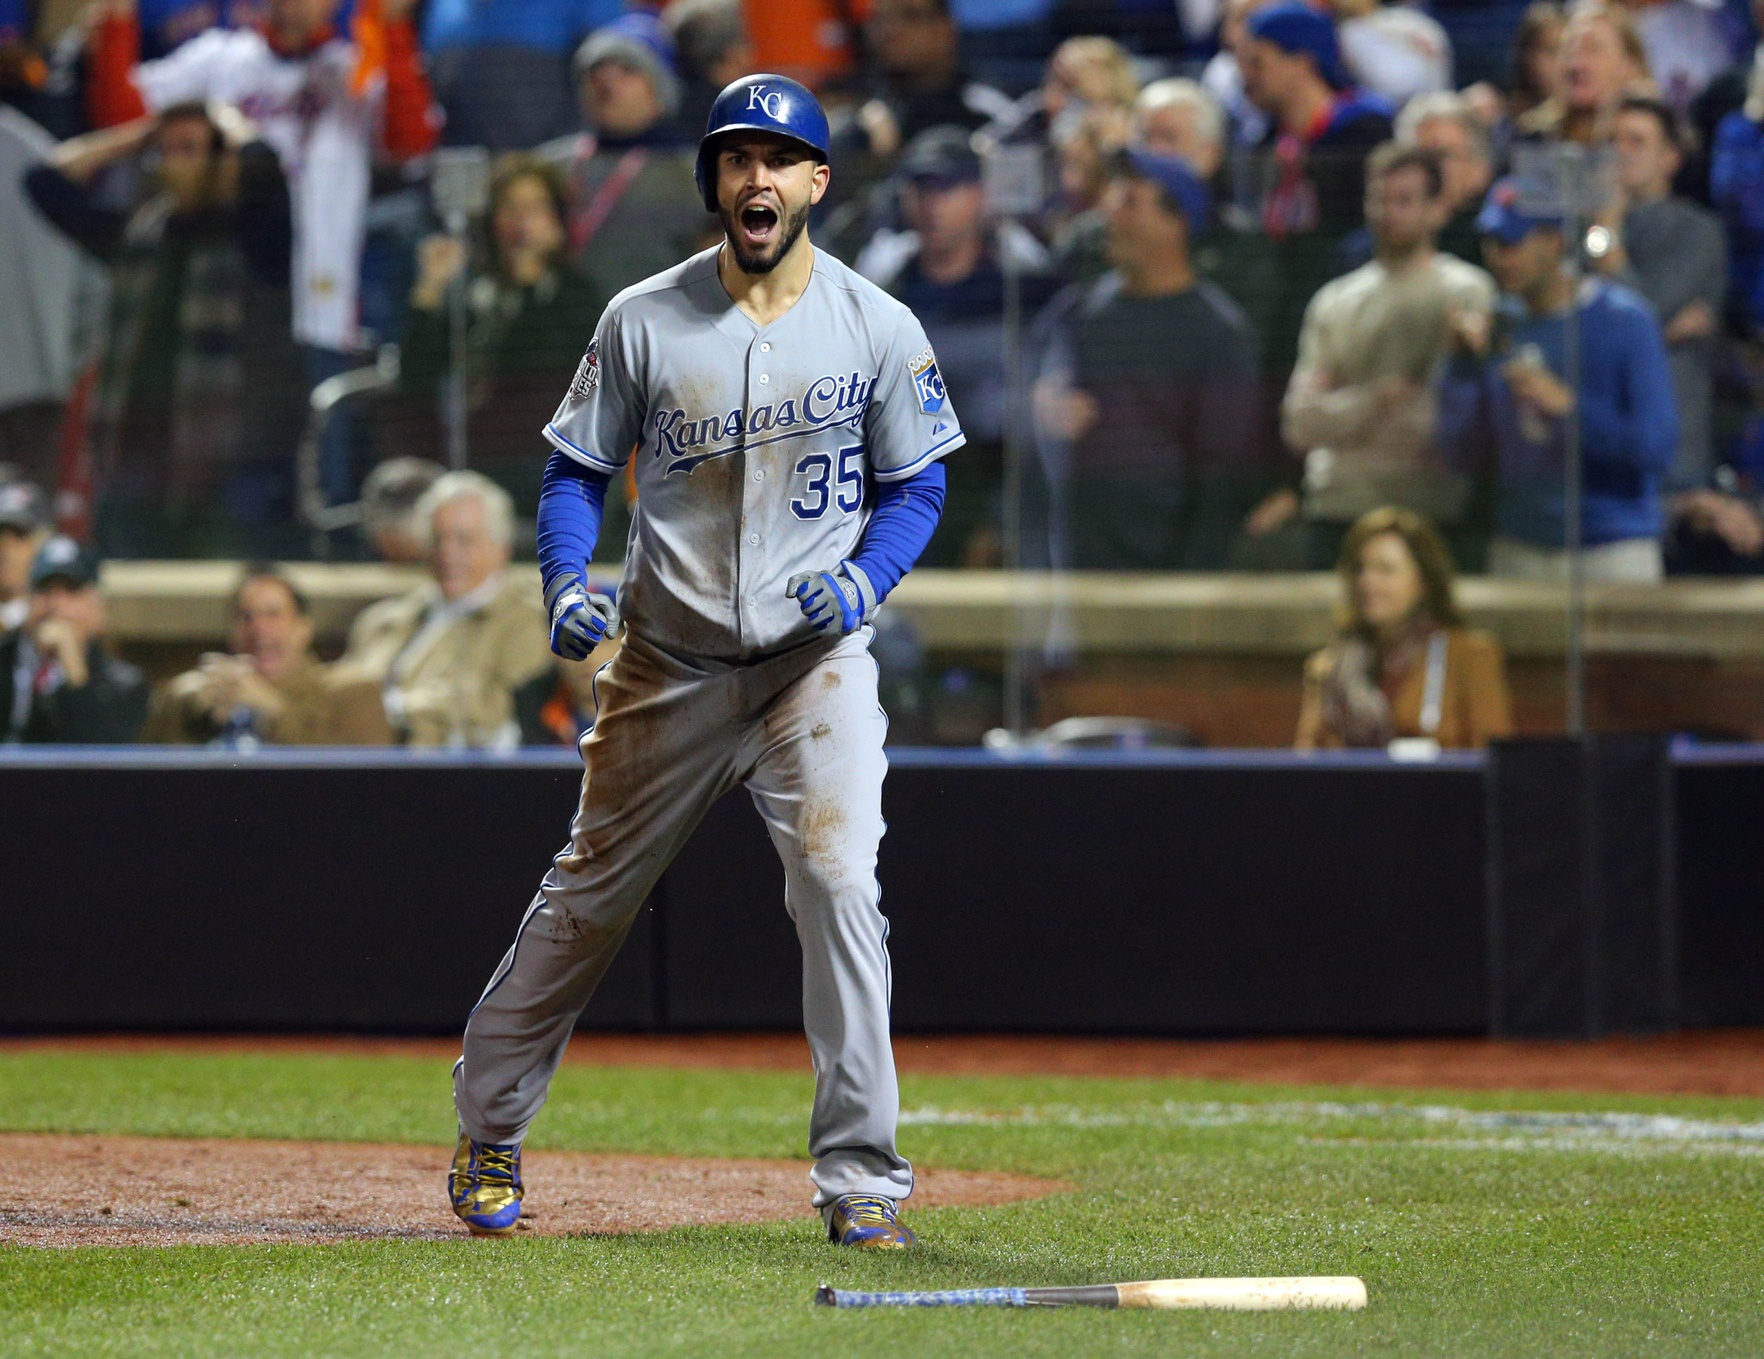 Nov 1, 2015; New York City, NY, USA; Kansas City Royals first baseman Eric Hosmer (35) reacts after scoring the tying run against the New York Mets in the 9th inning in game five of the World Series at Citi Field. Mandatory Credit: Brad Penner-USA TODAY Sports